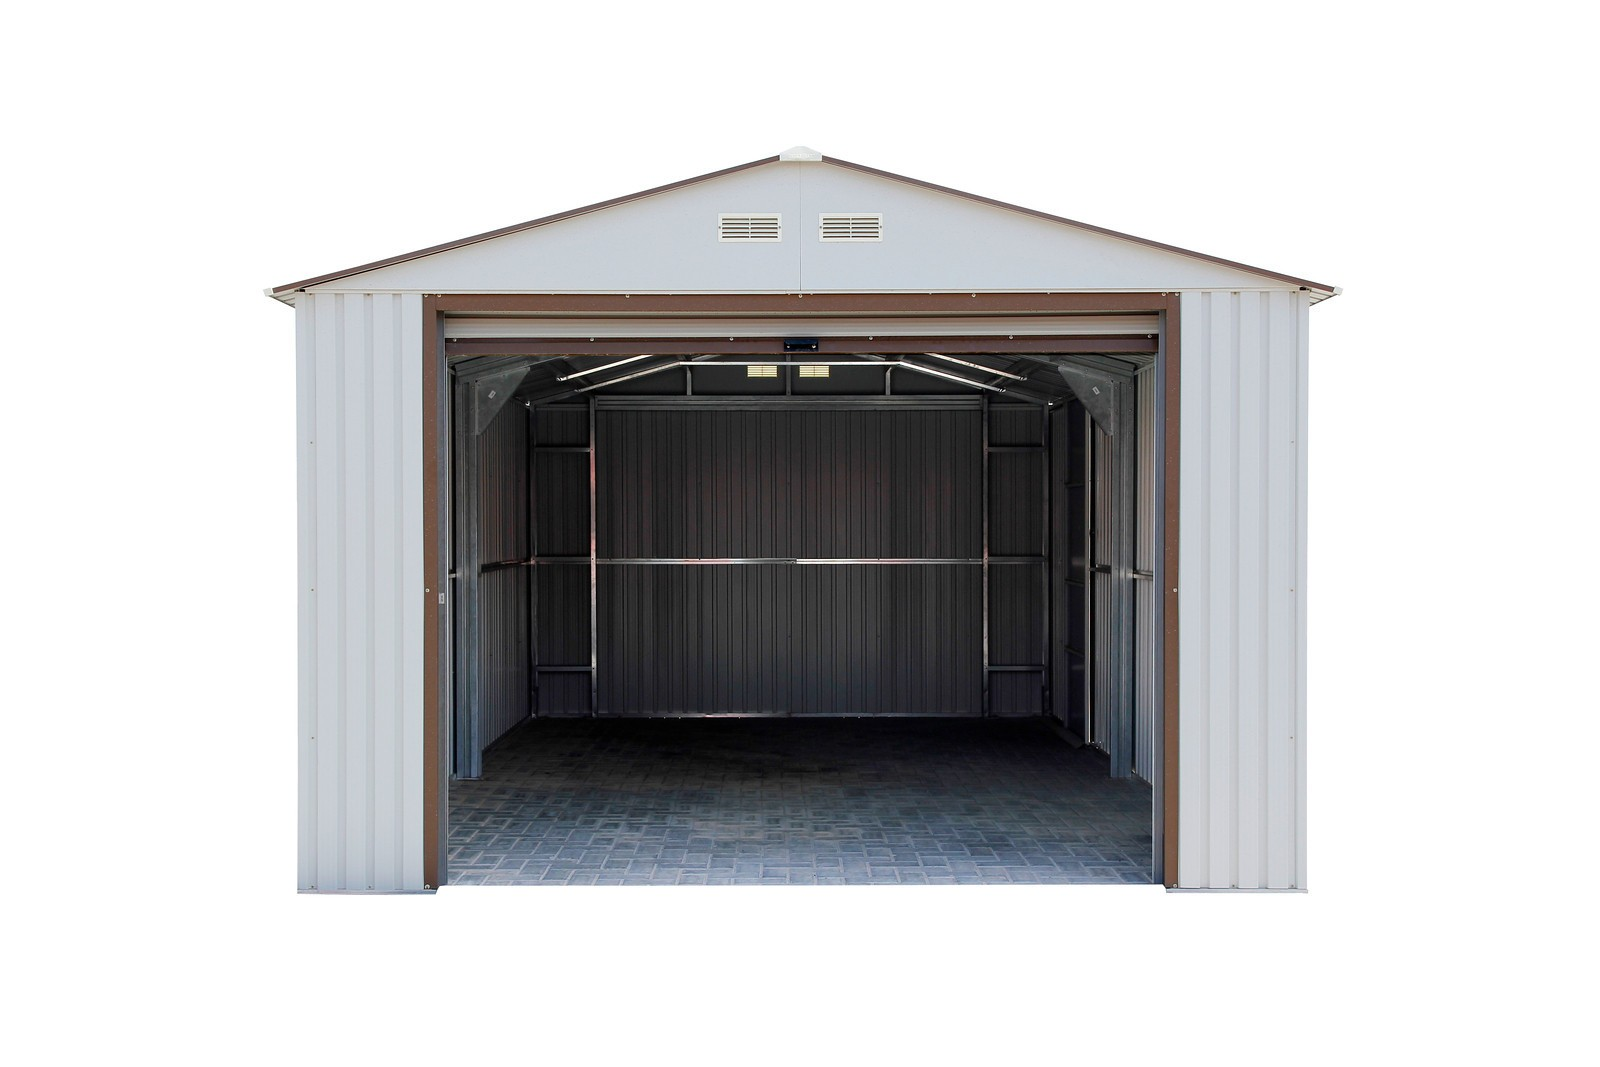 Duramax 55231 Metal Garage – 12' x 32' Metal Storage Shed  – Off White with Brown Trim